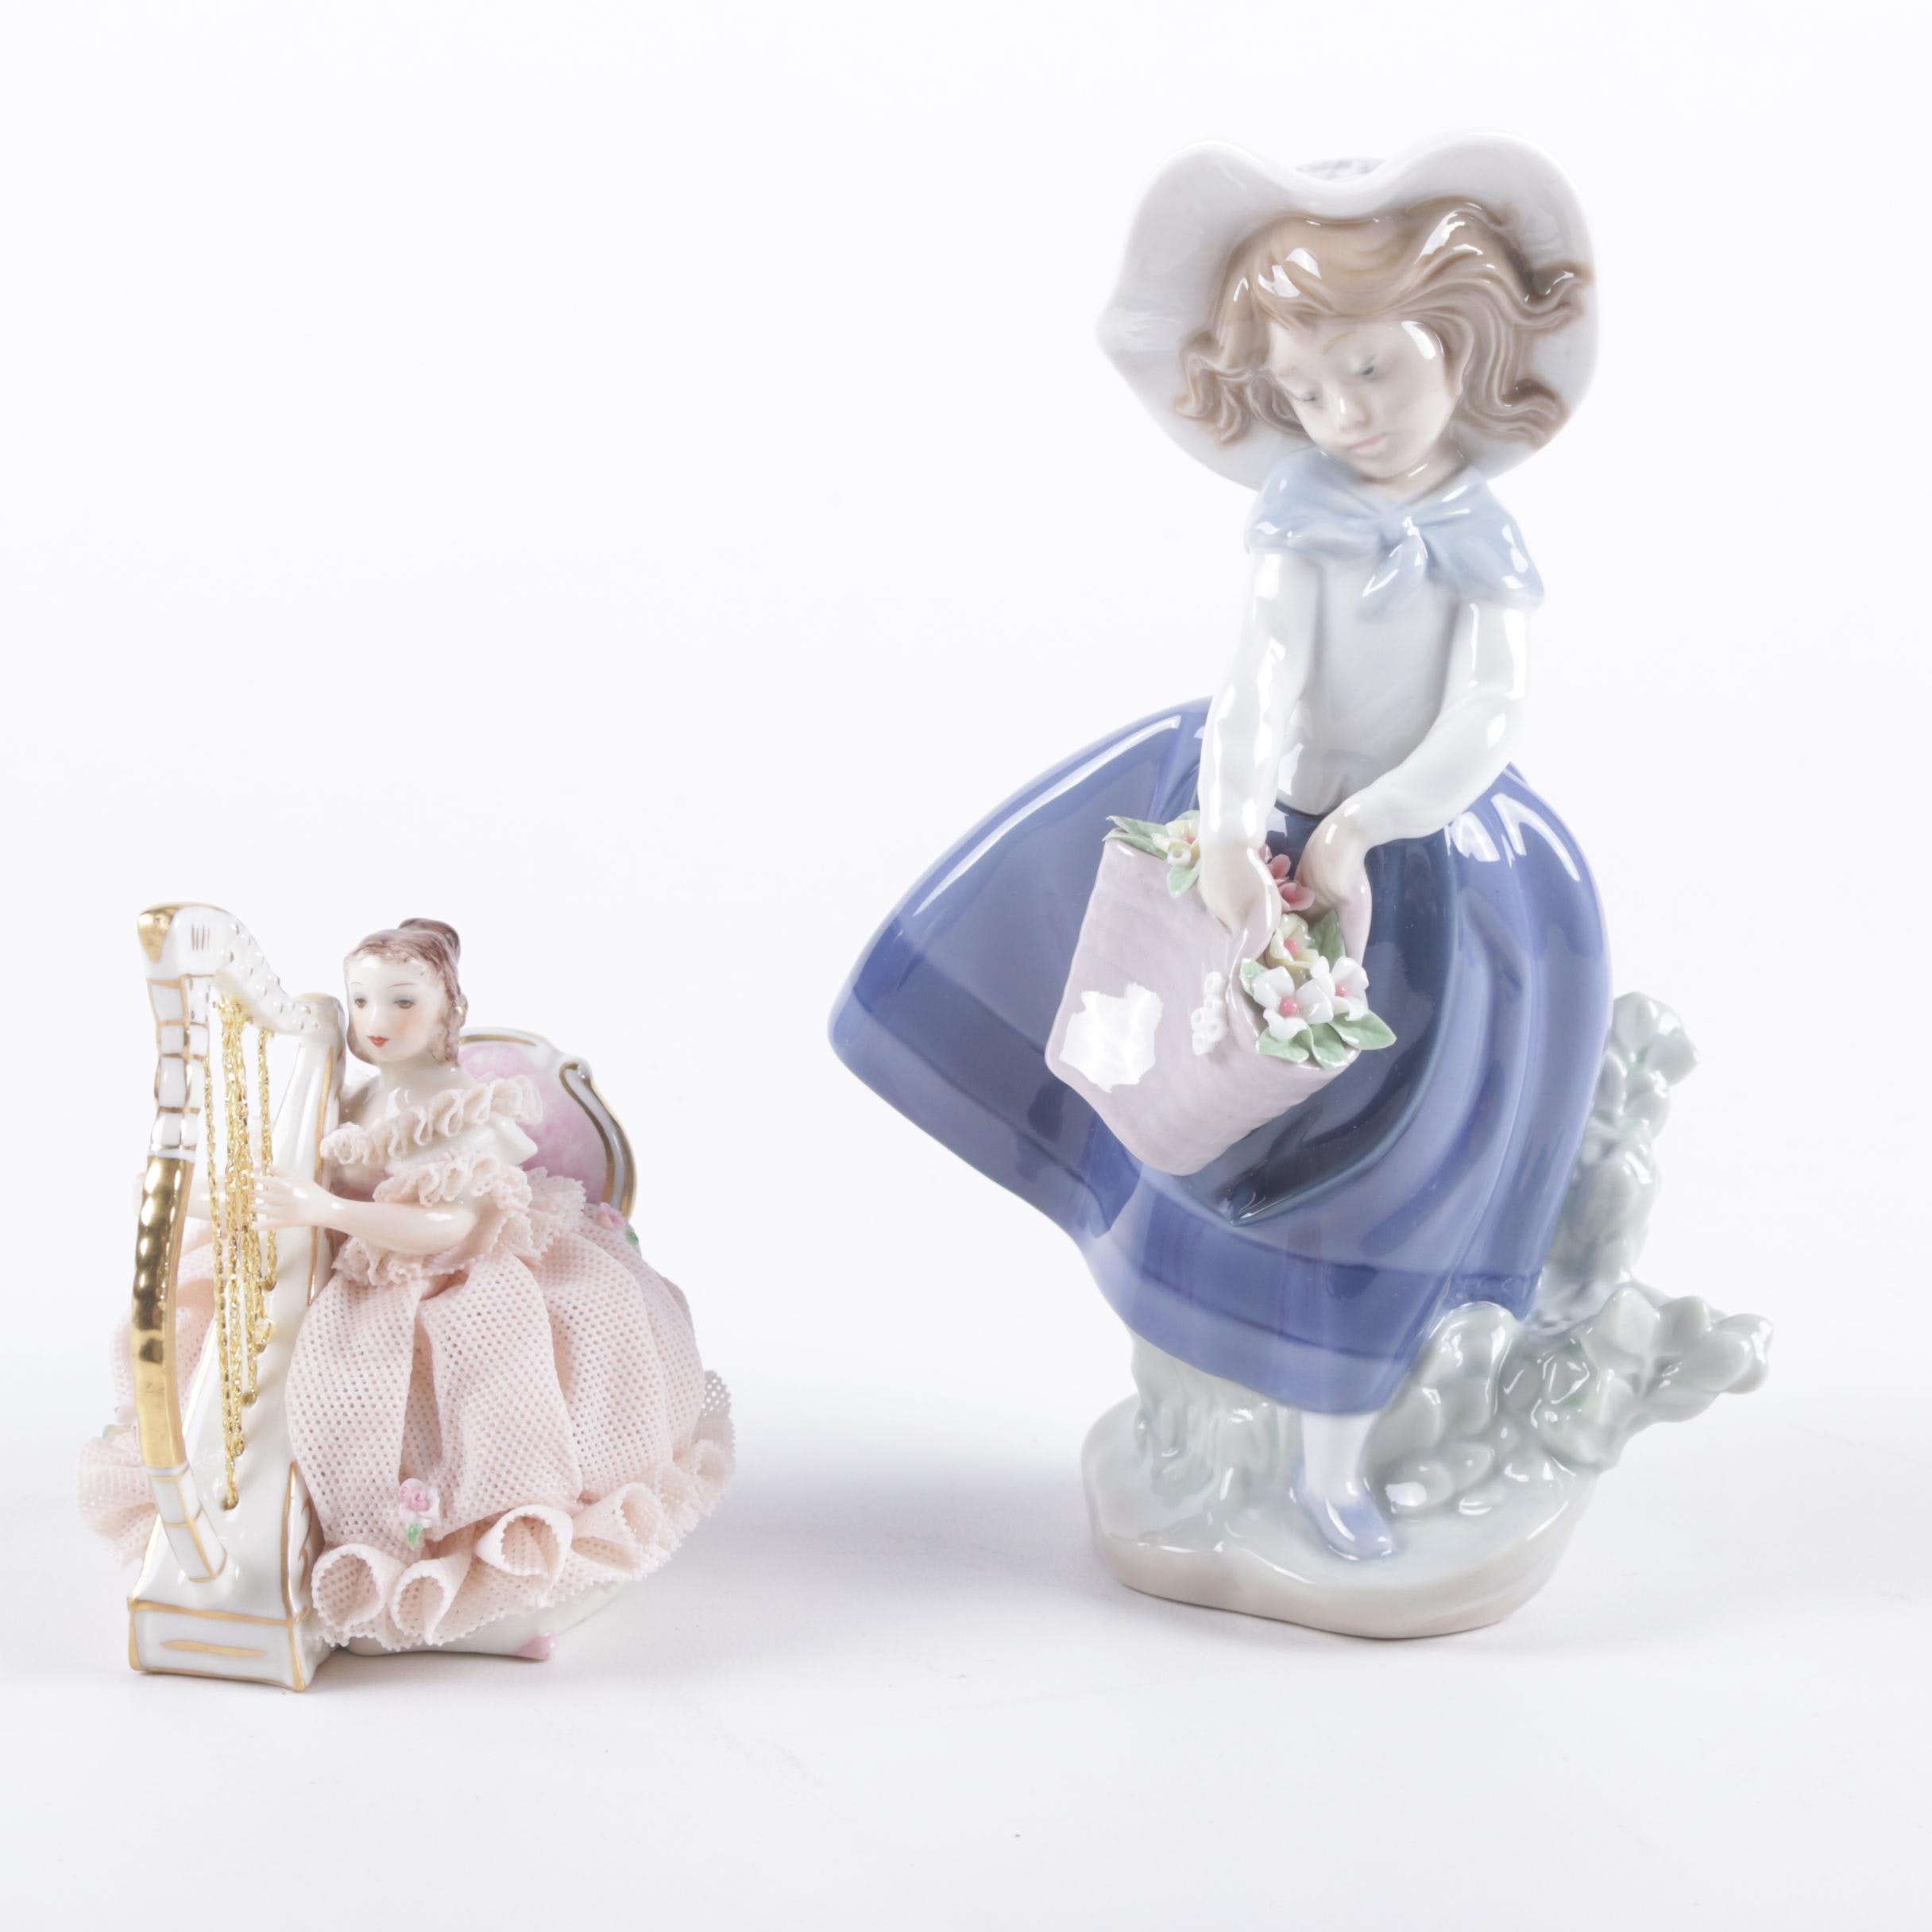 Lladro and Irish Dresden Porcelain Figurines